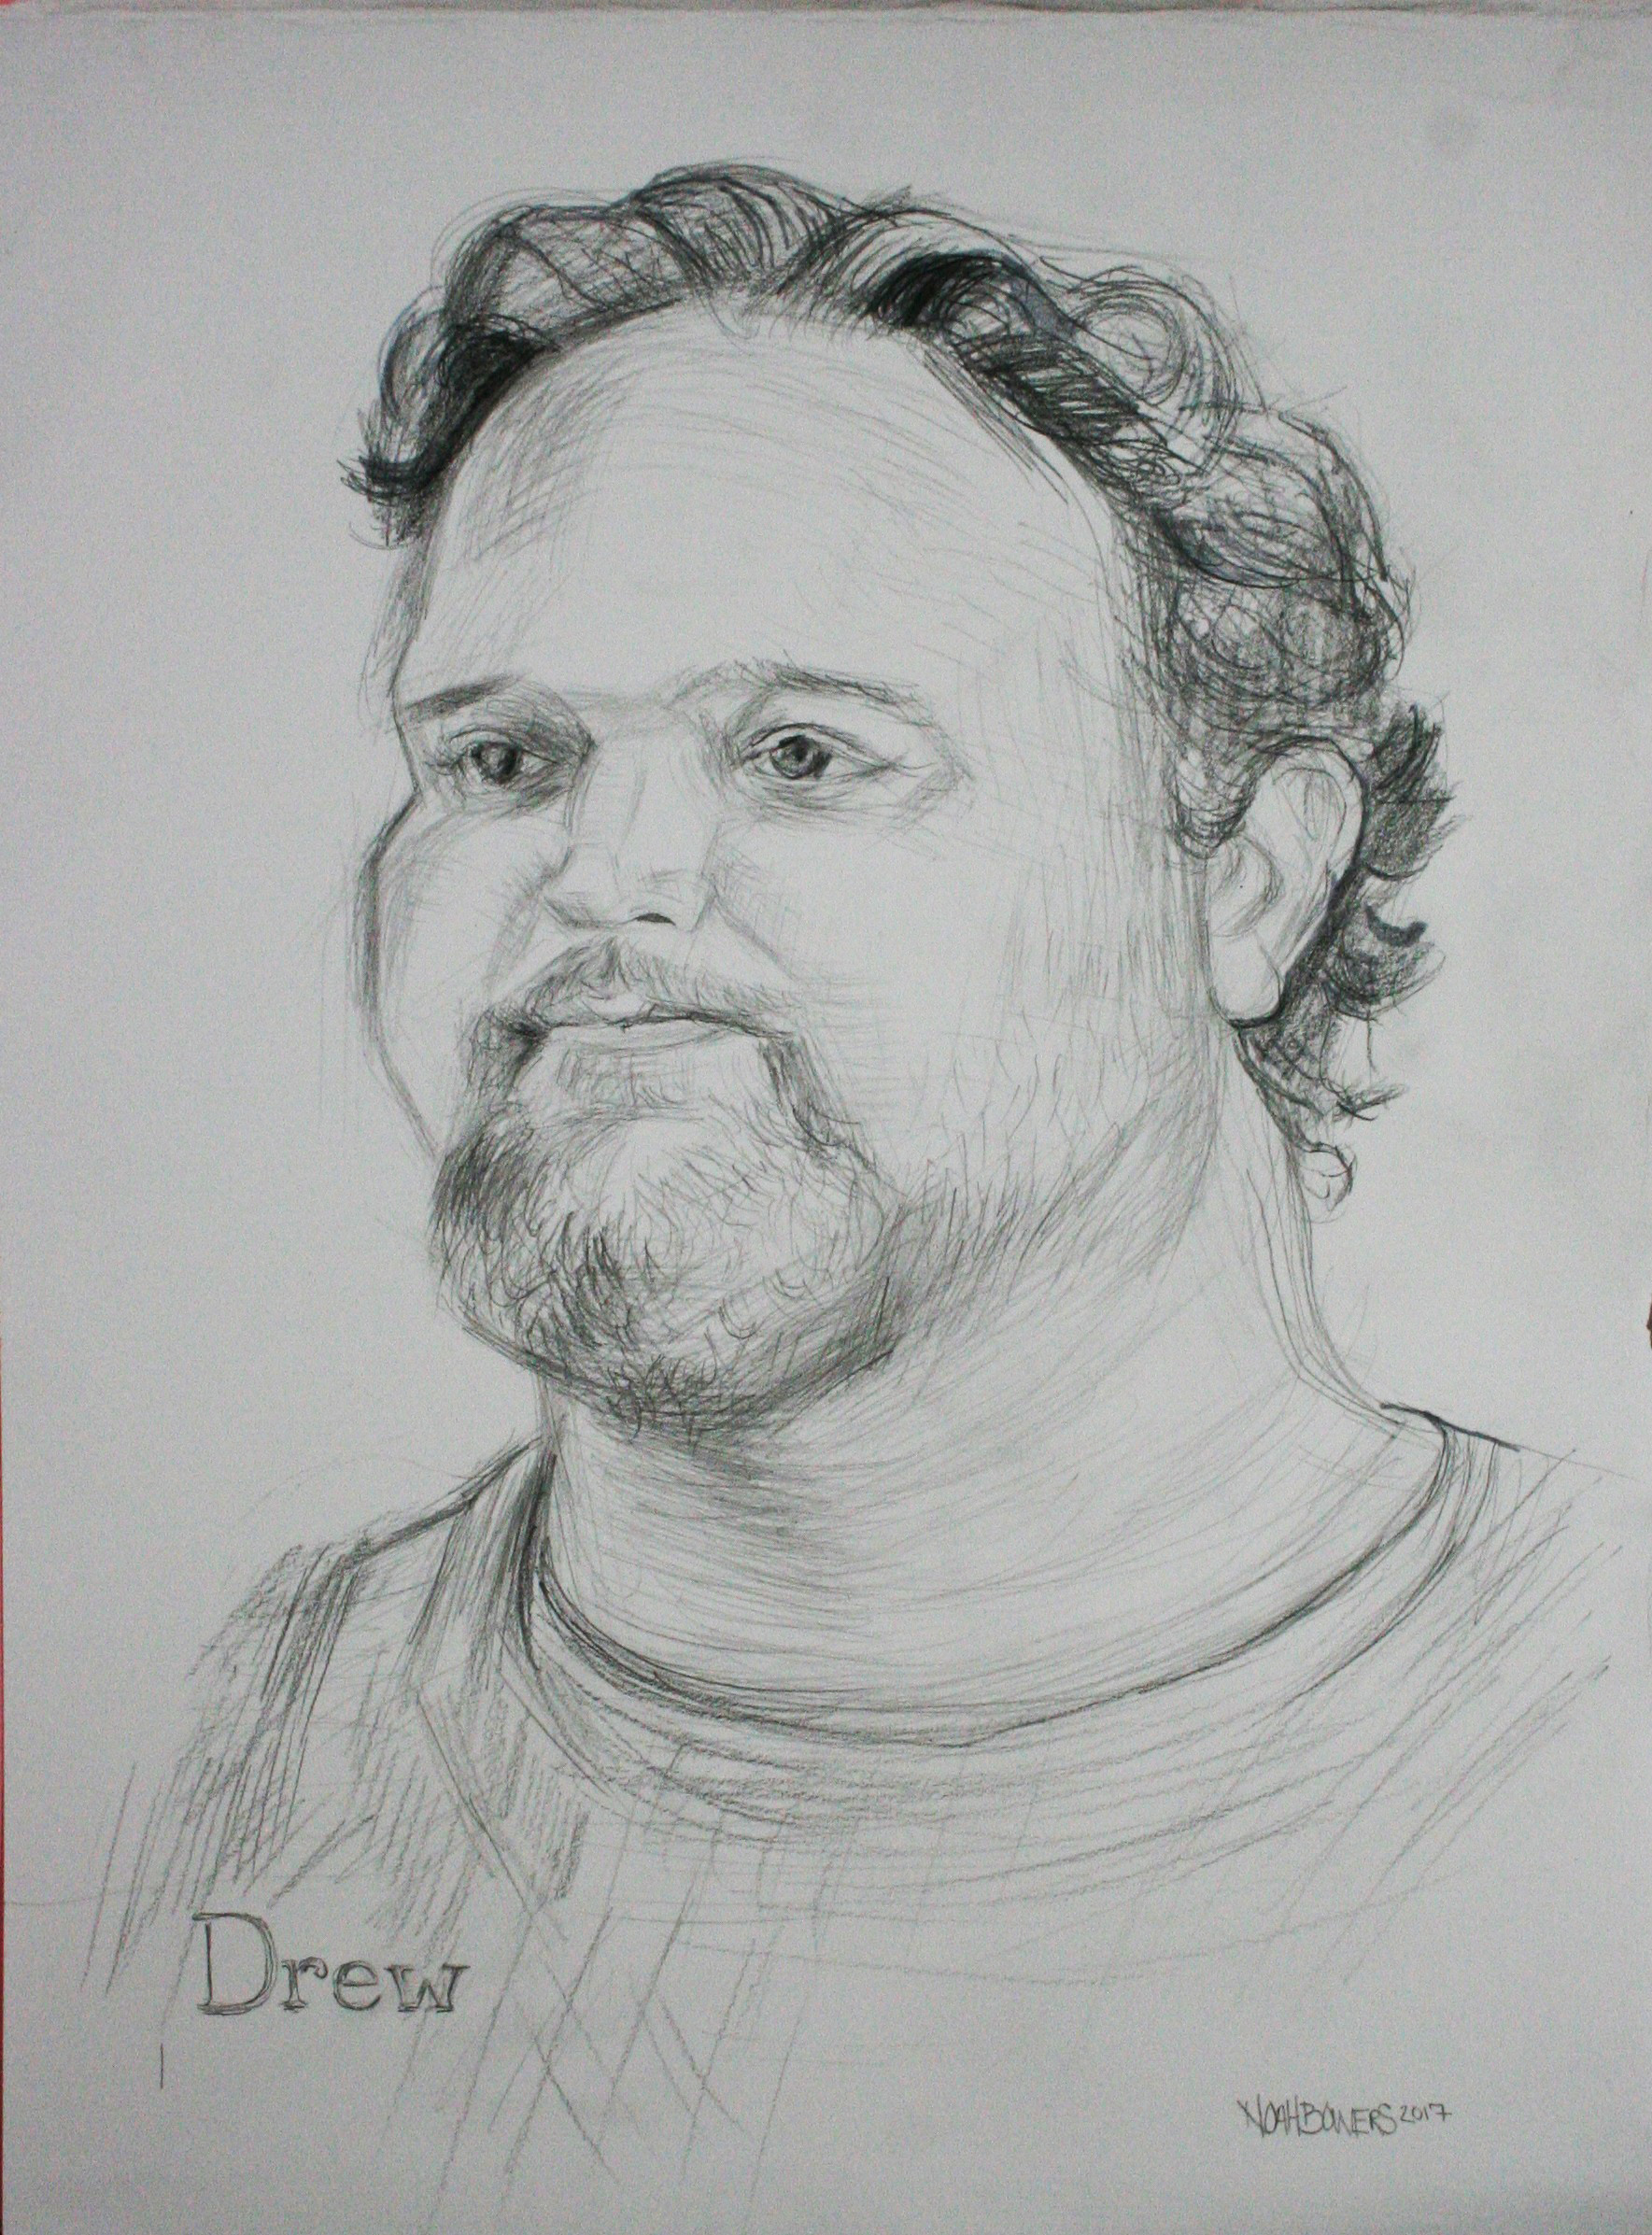 Noah Bowers did this 3-hour drawing.